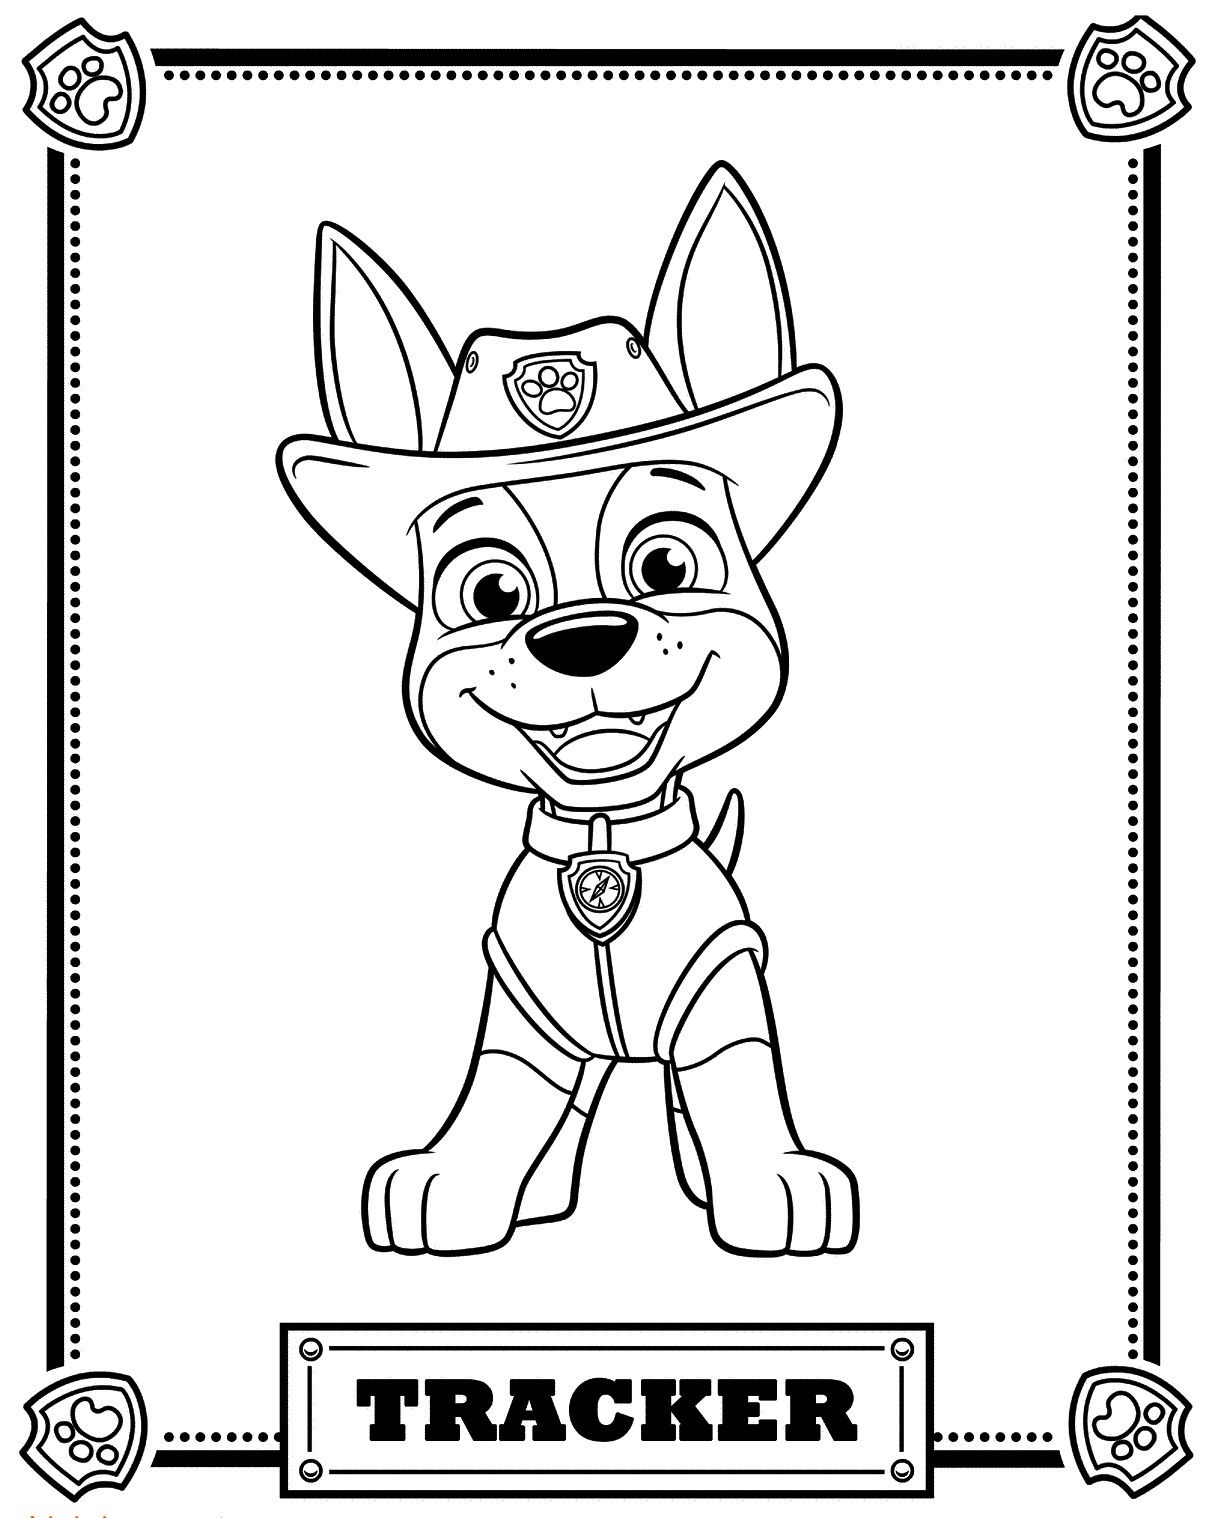 rescue dog coloring pages pin by super creative kids on kids coloring paw patrol pages dog coloring rescue